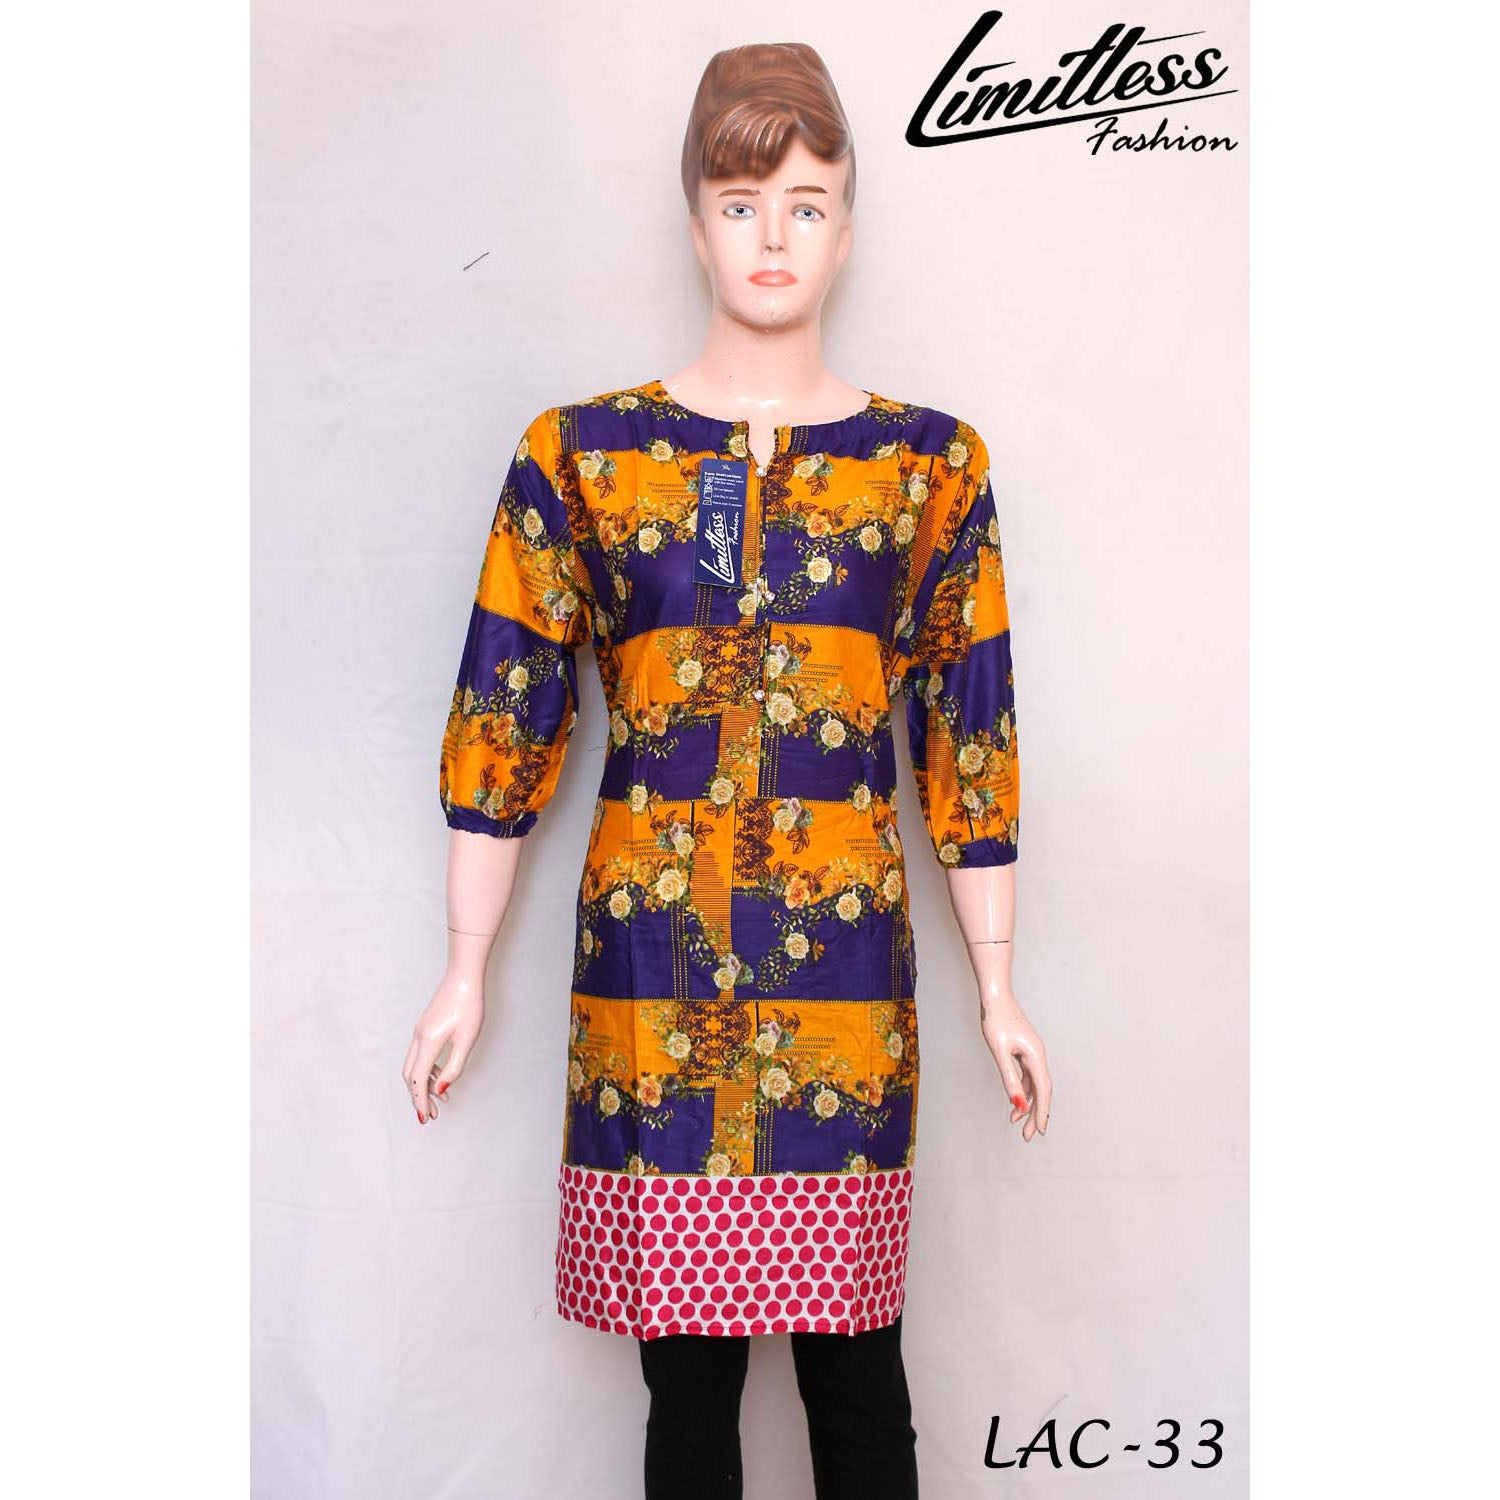 New & Latest Printed Cotton Lawn Stitched Kurti for Women in Medium - LAC-33